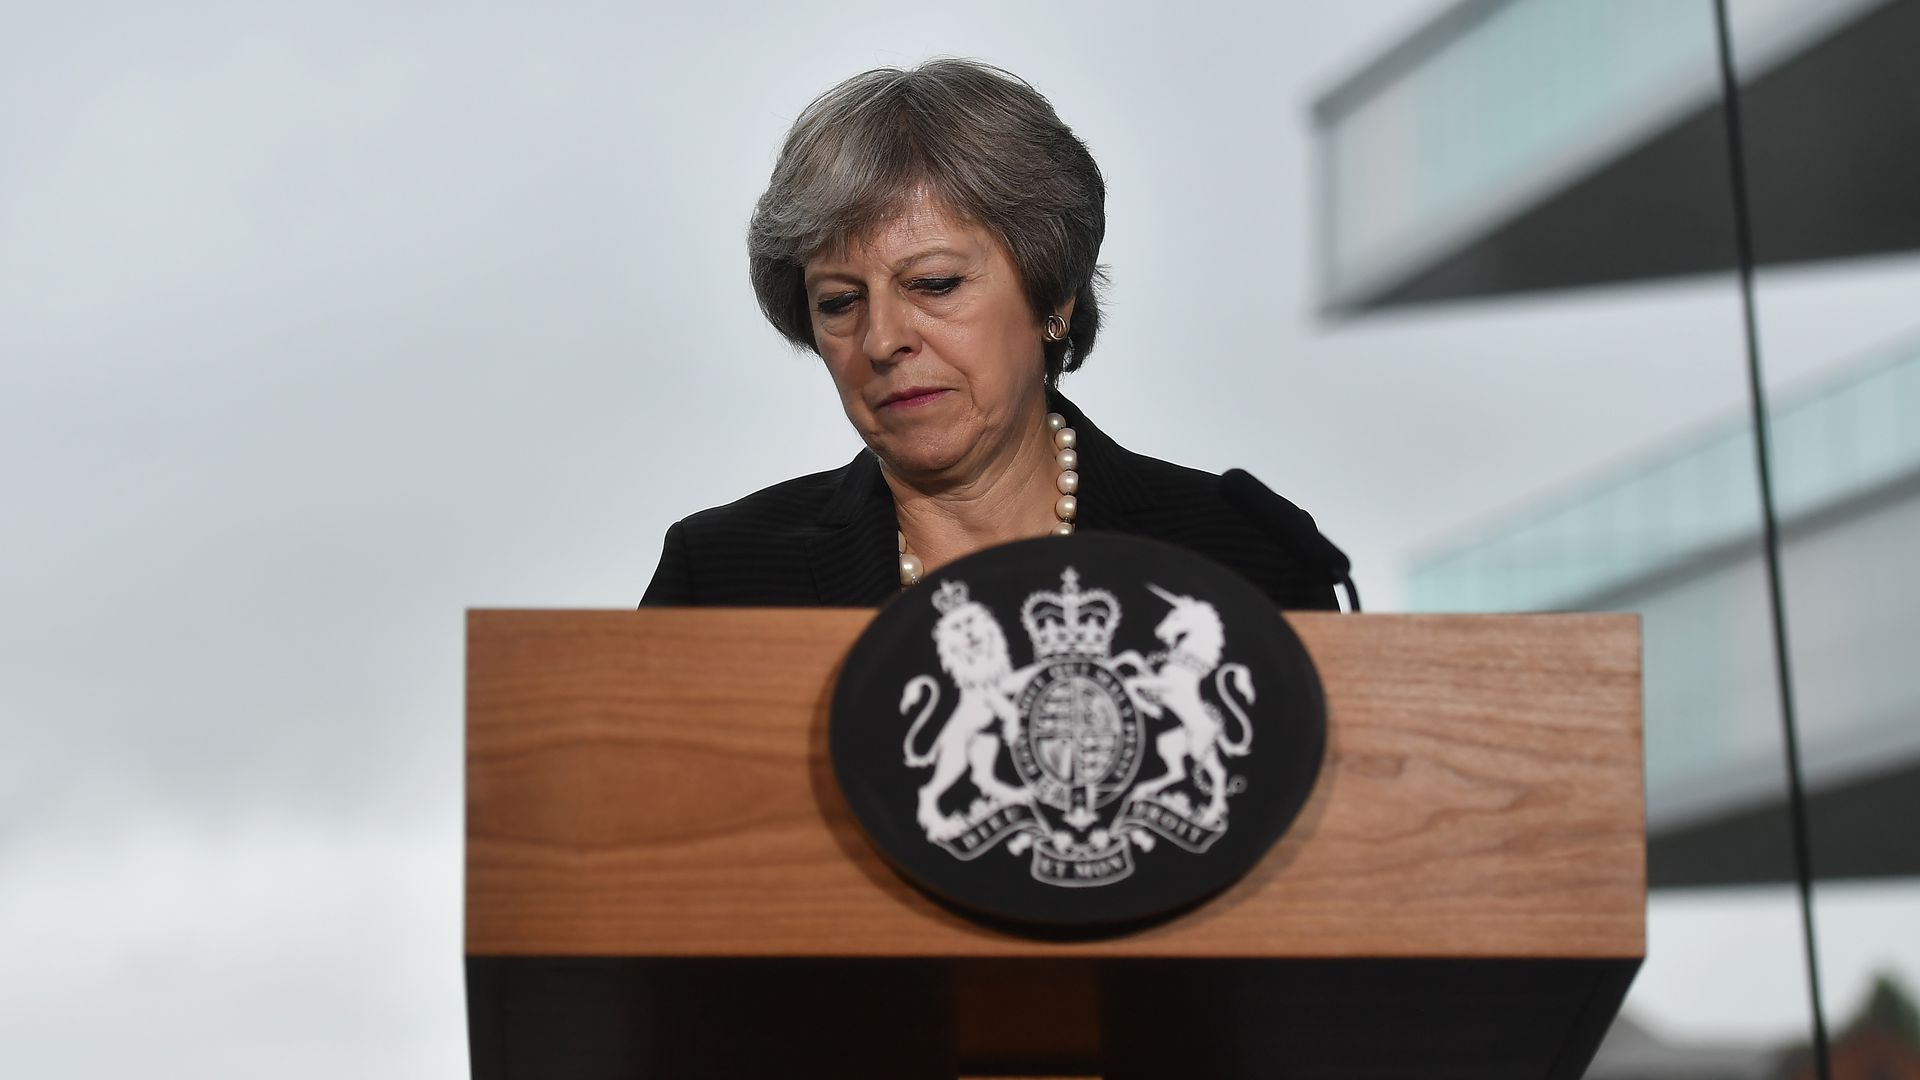 Theresa May during a speech in Belfast, Northern Ireland